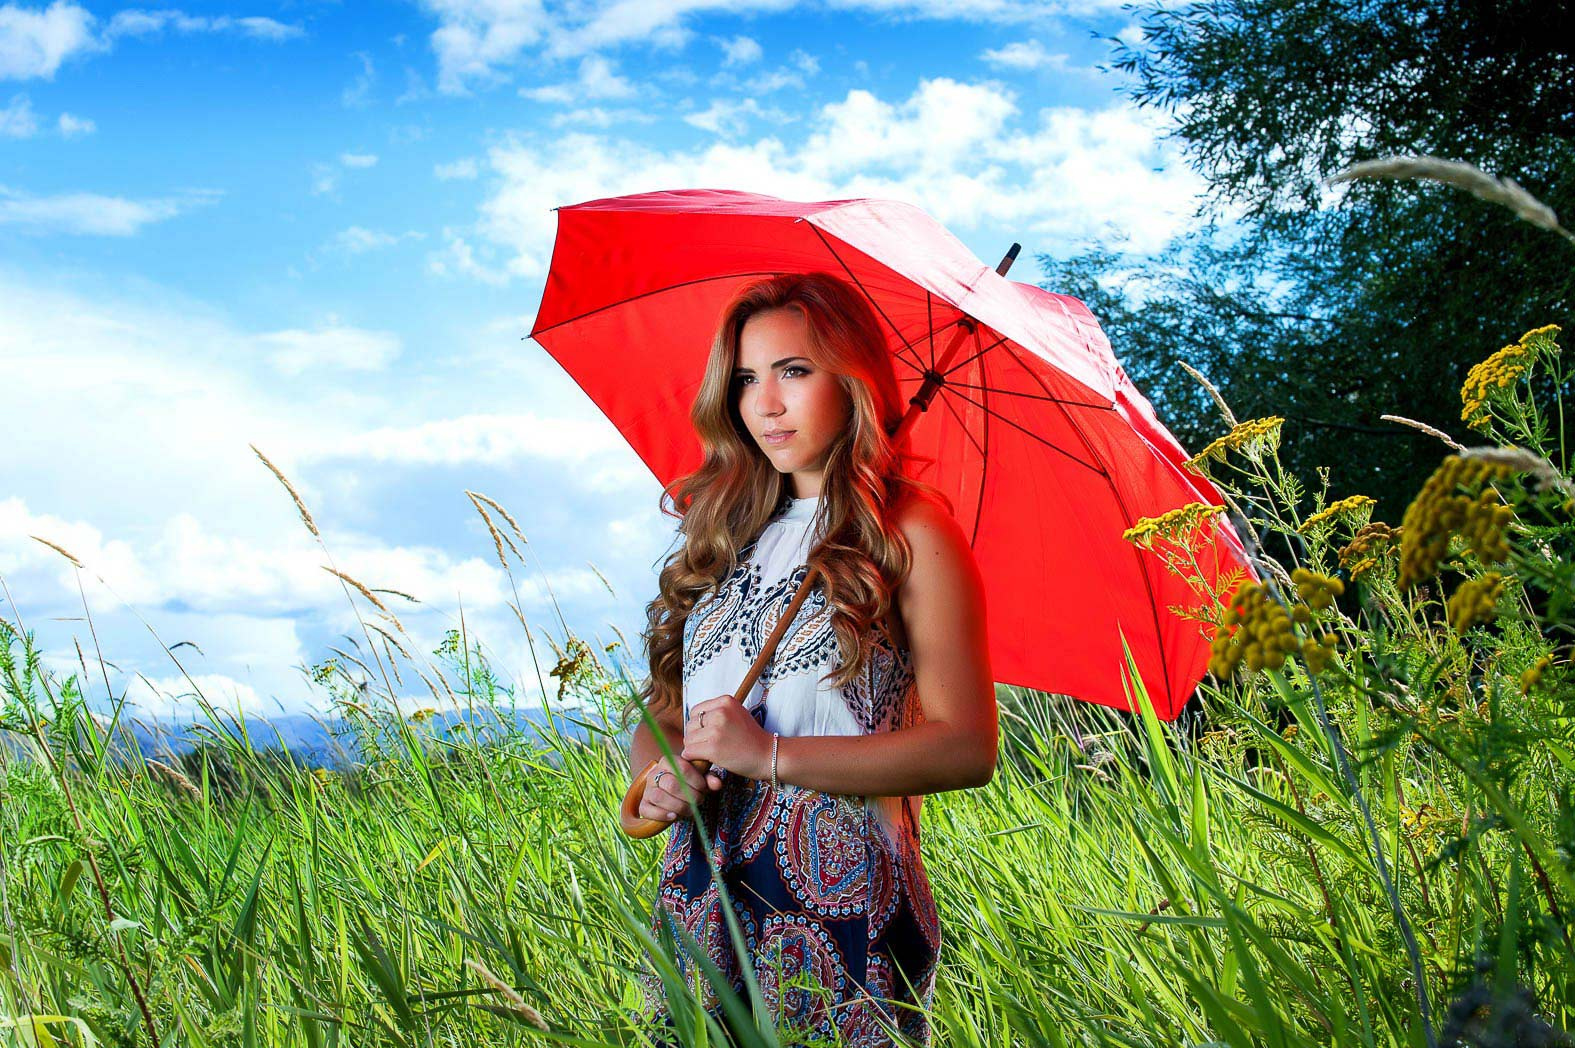 senior picture of girl posing with red umbrella